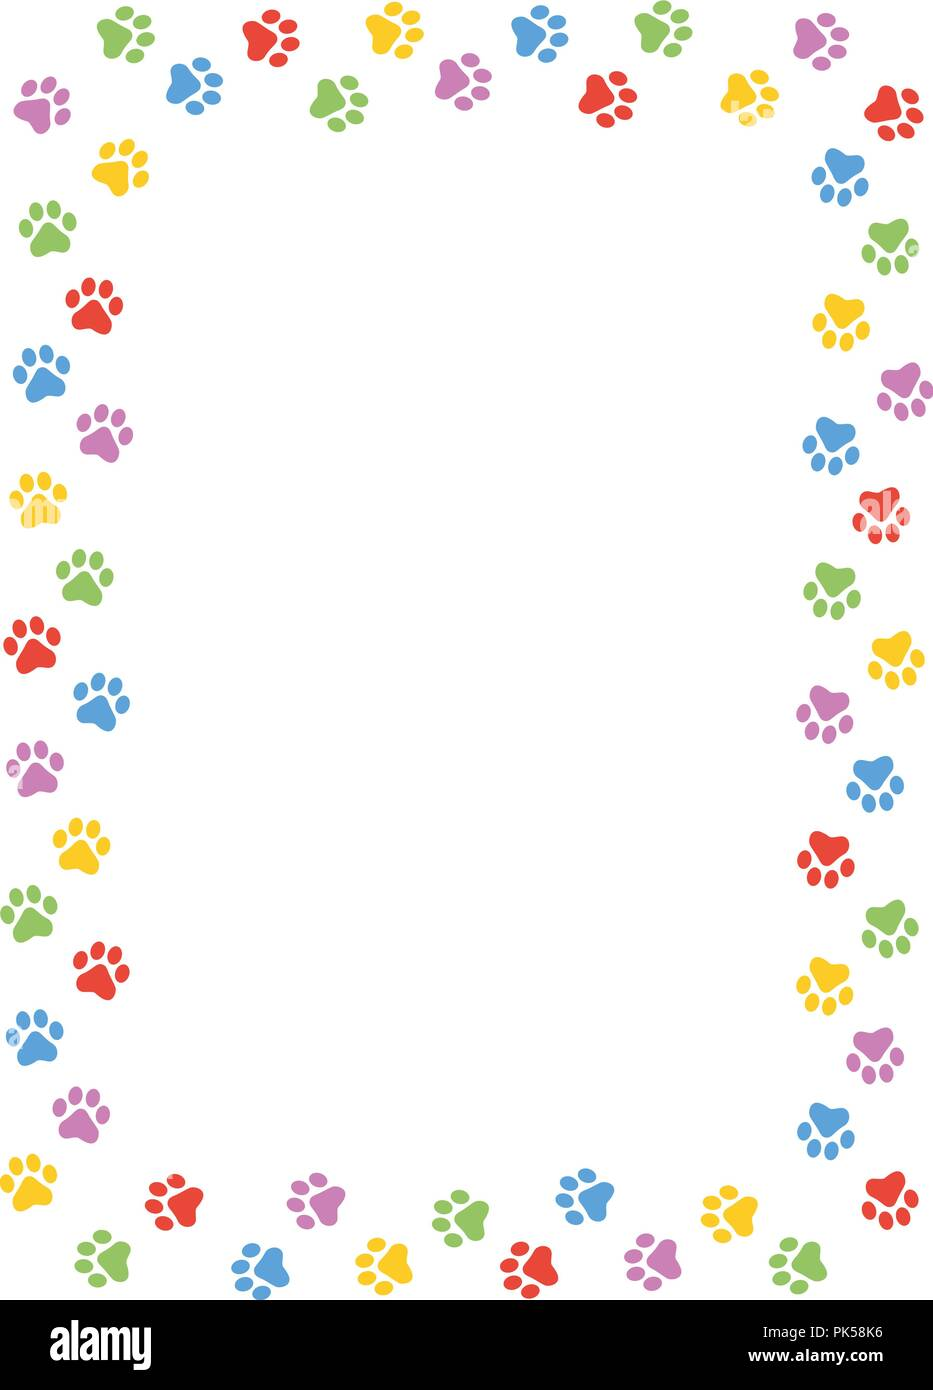 Colorful Dog Paw Print Frame Border On White Background Stock